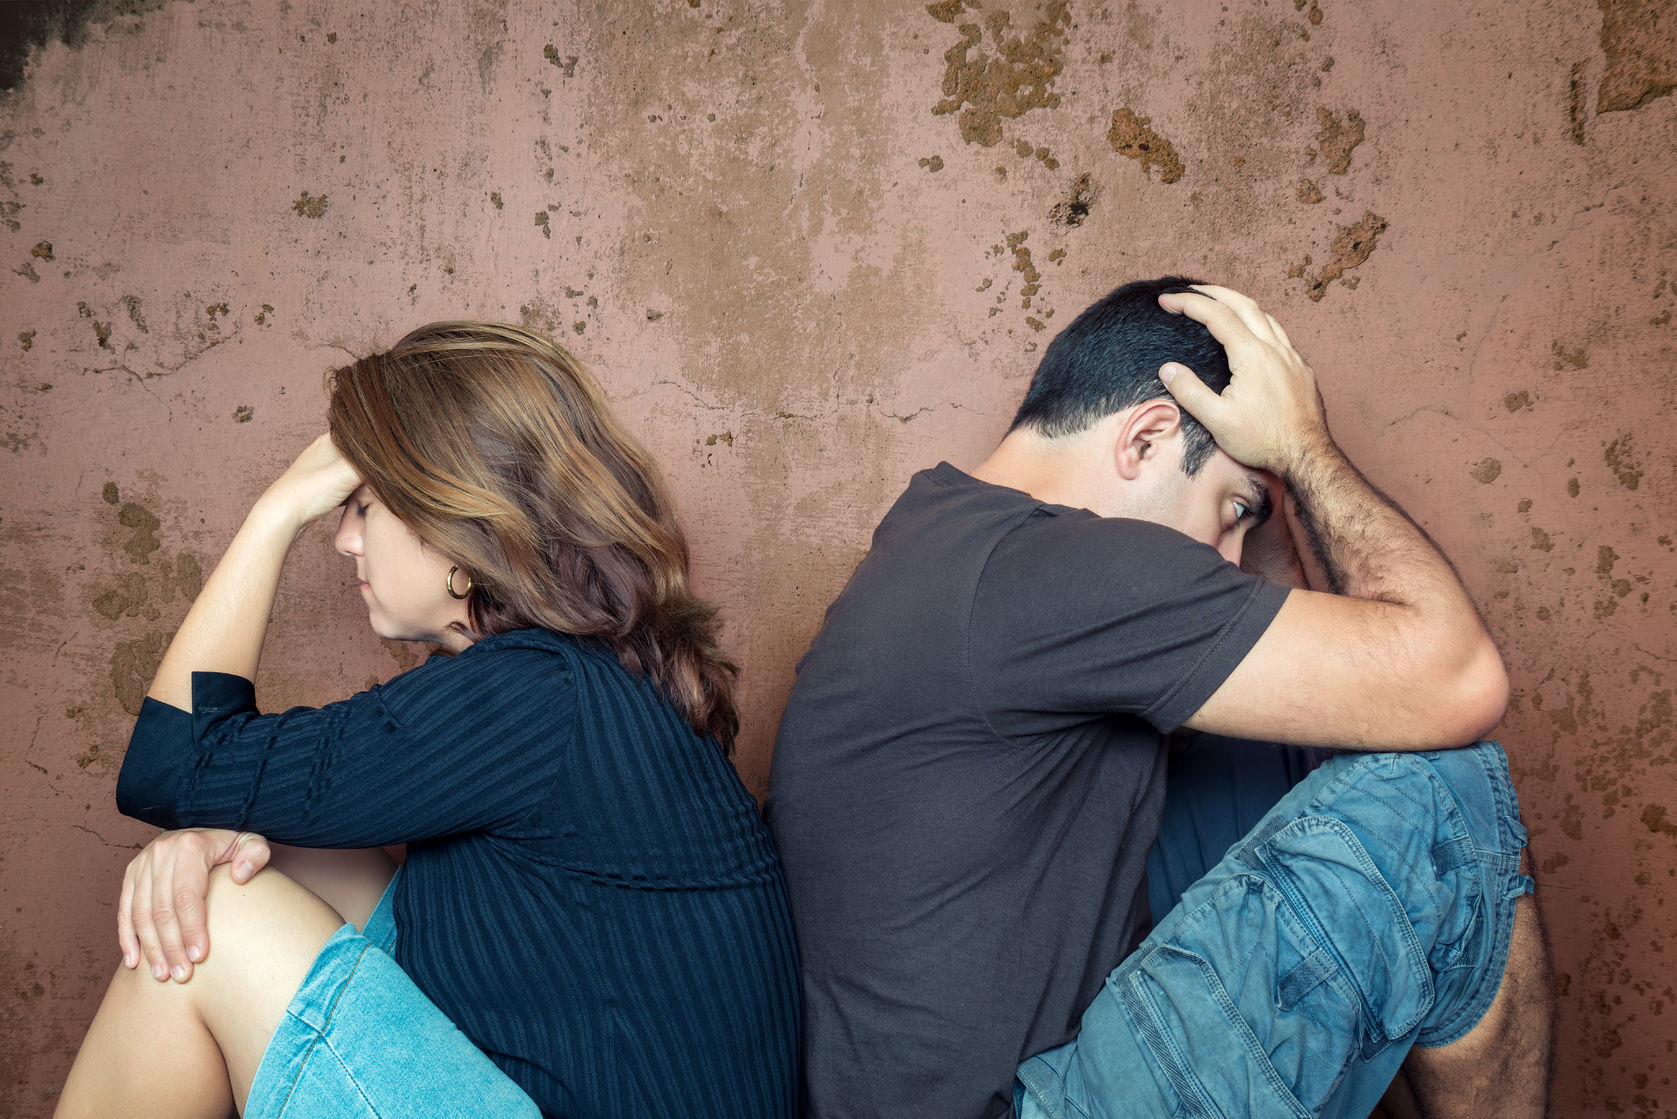 How to move on after divorce and infidelity